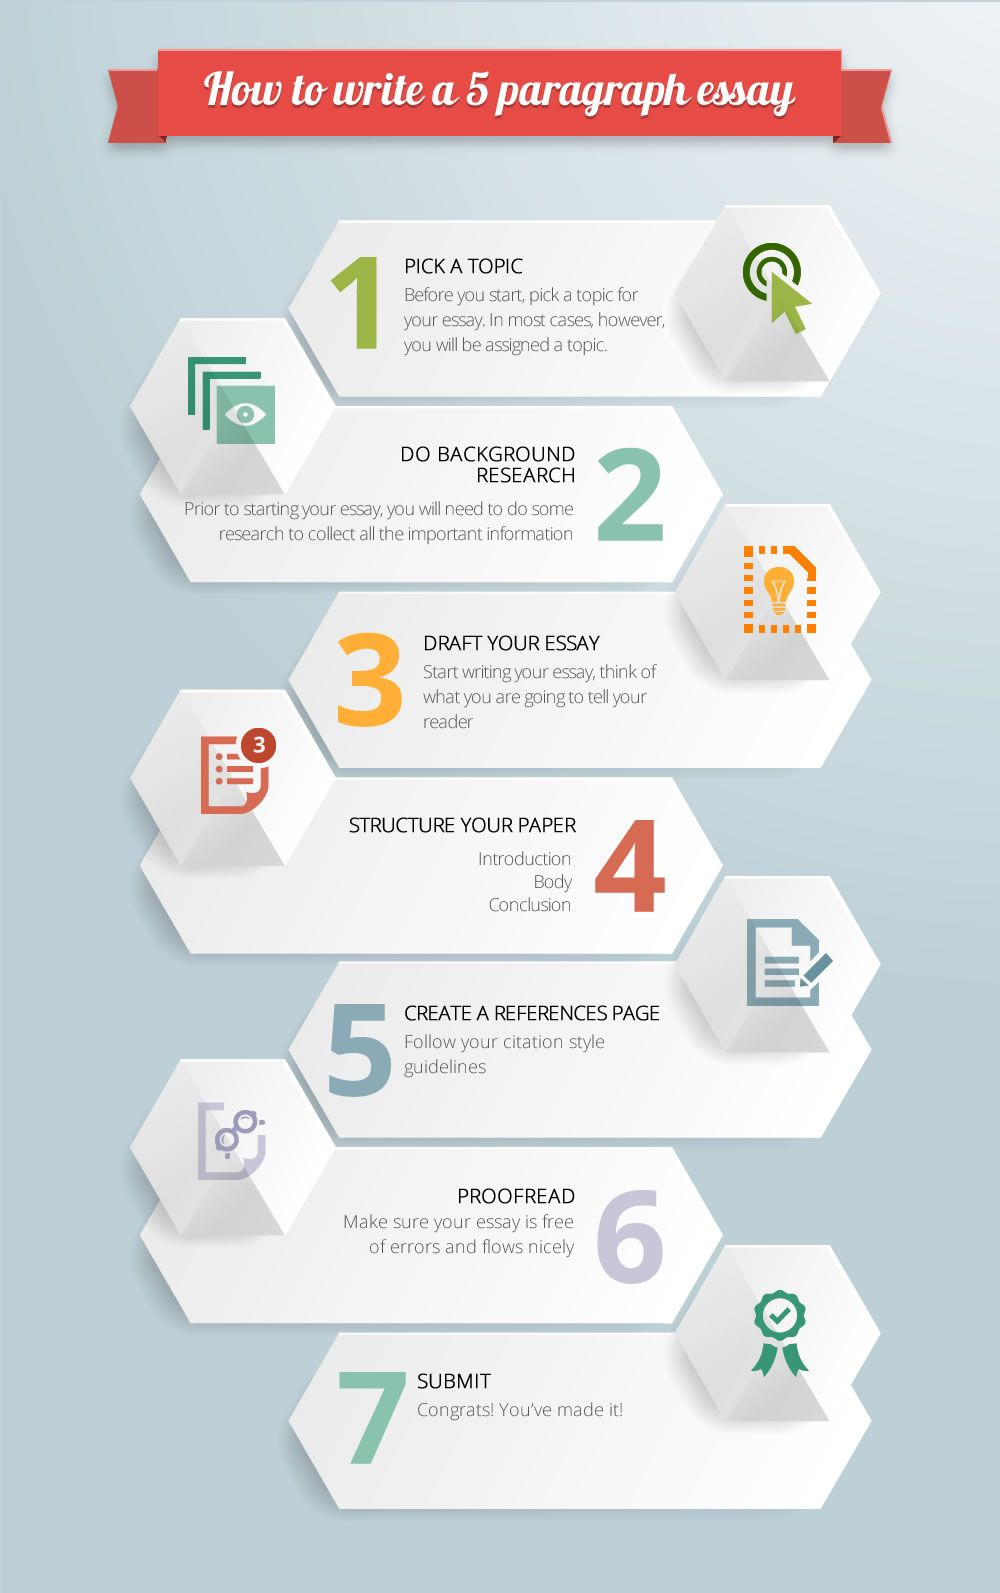 awesome infographic on five paragraph essay outline check it out this is a visual representation of the 5 paragraph essay outline writing it will help you to better cope the writing and become more effective in